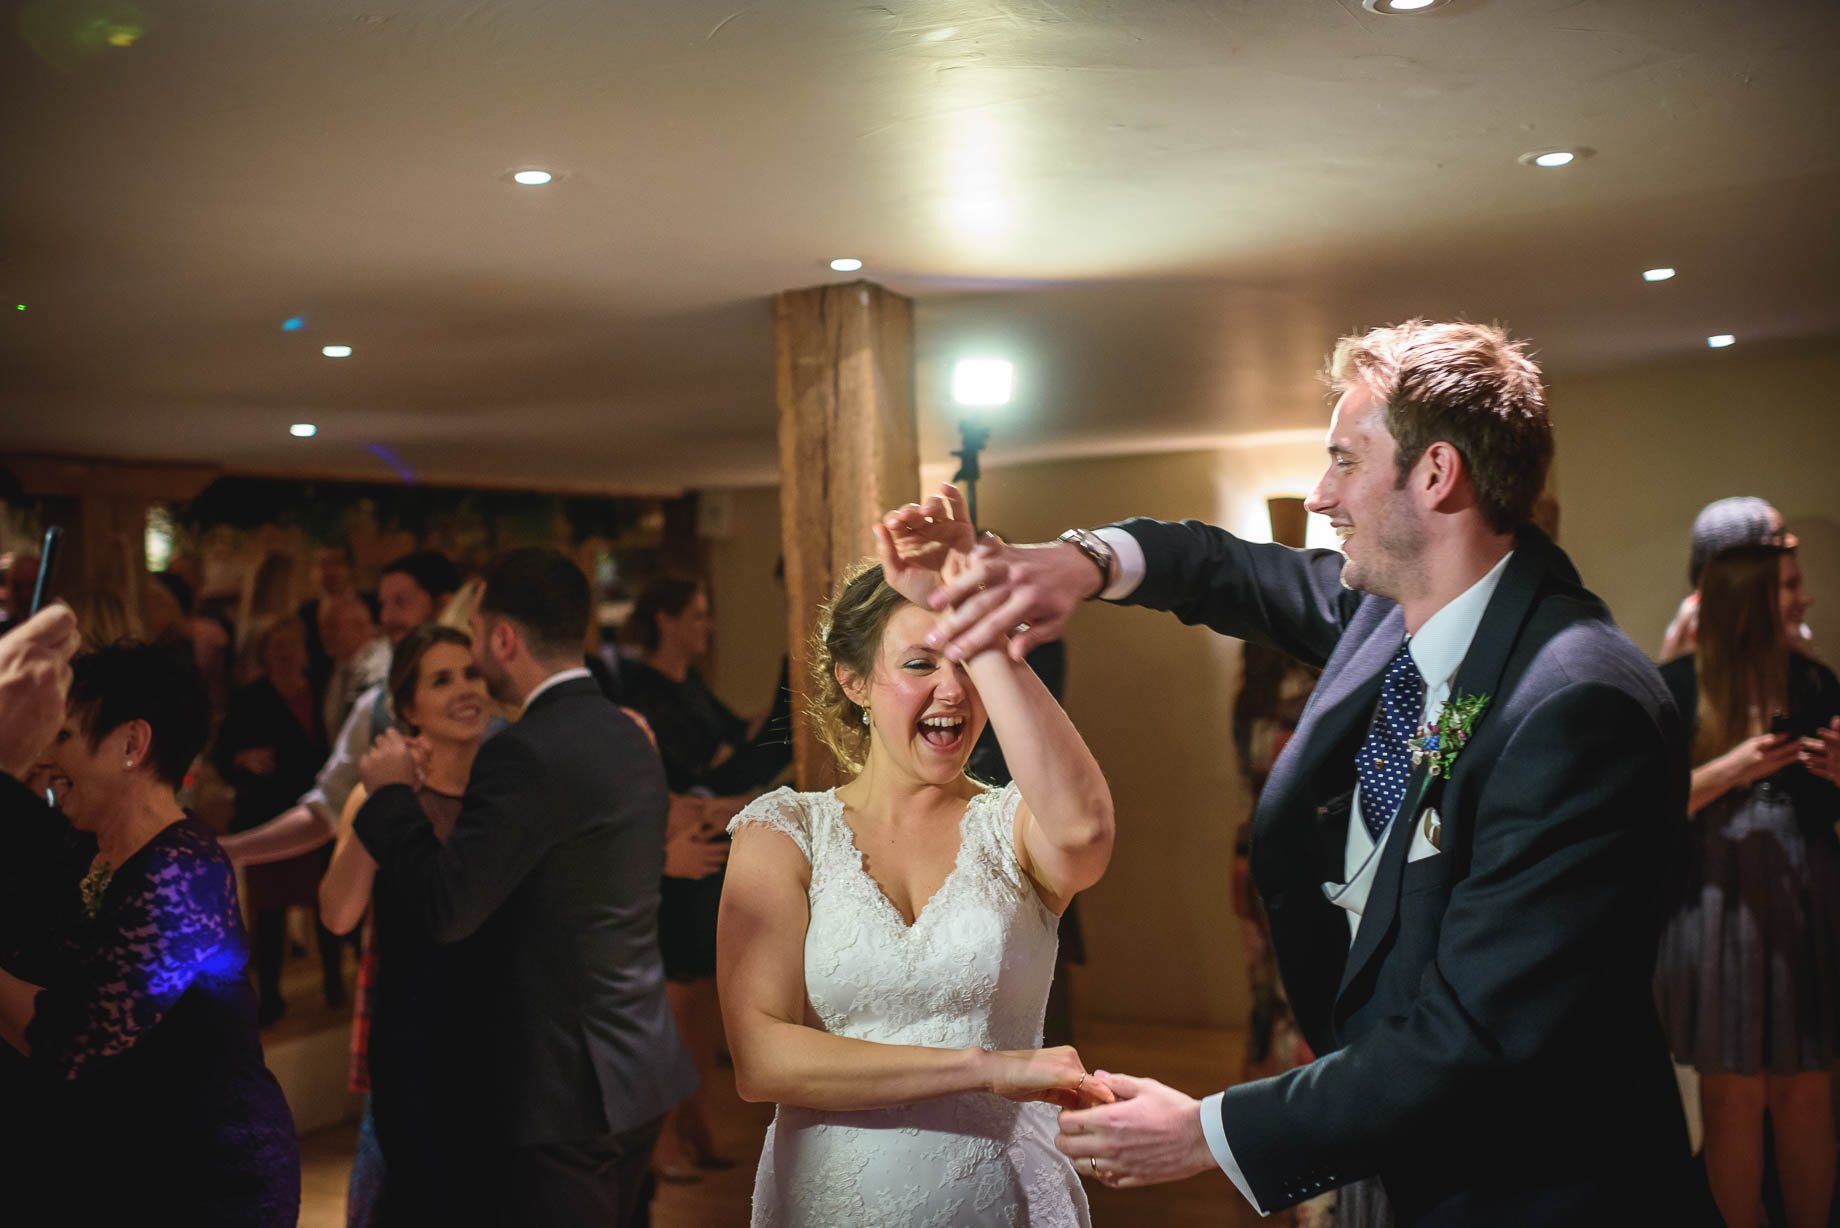 Bury Court Barn wedding photography - Ashley and Henry by Guy Collier Photography (169 of 188)